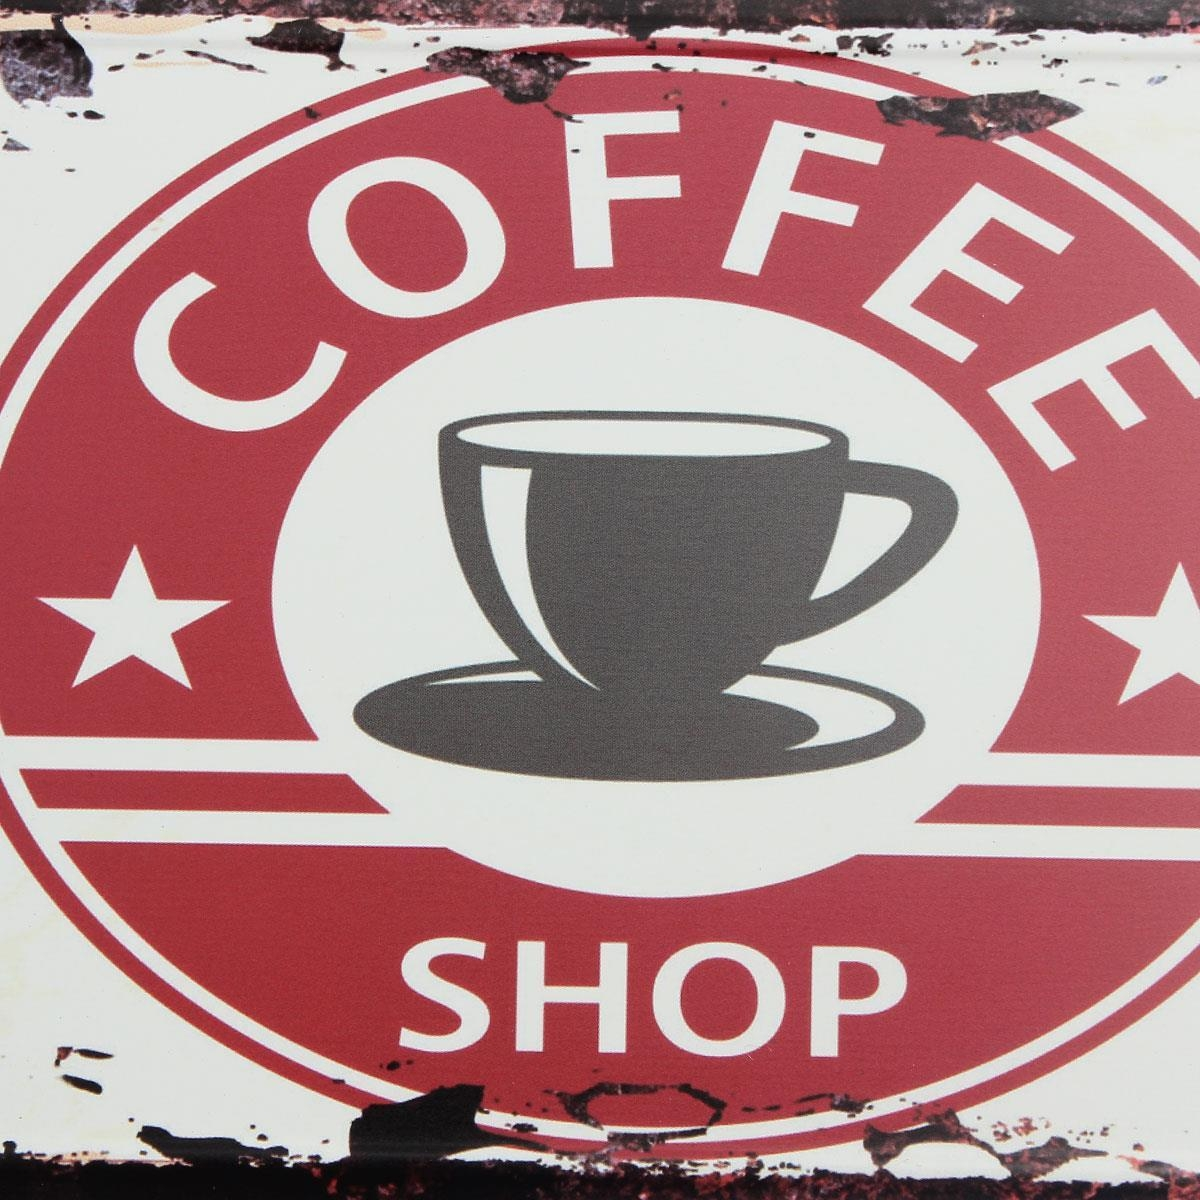 Coffee Theme Vintage Metal Sign The Fresh Brewed Coffee Wall Inside Coffee Theme Metal Wall Art (Image 8 of 20)